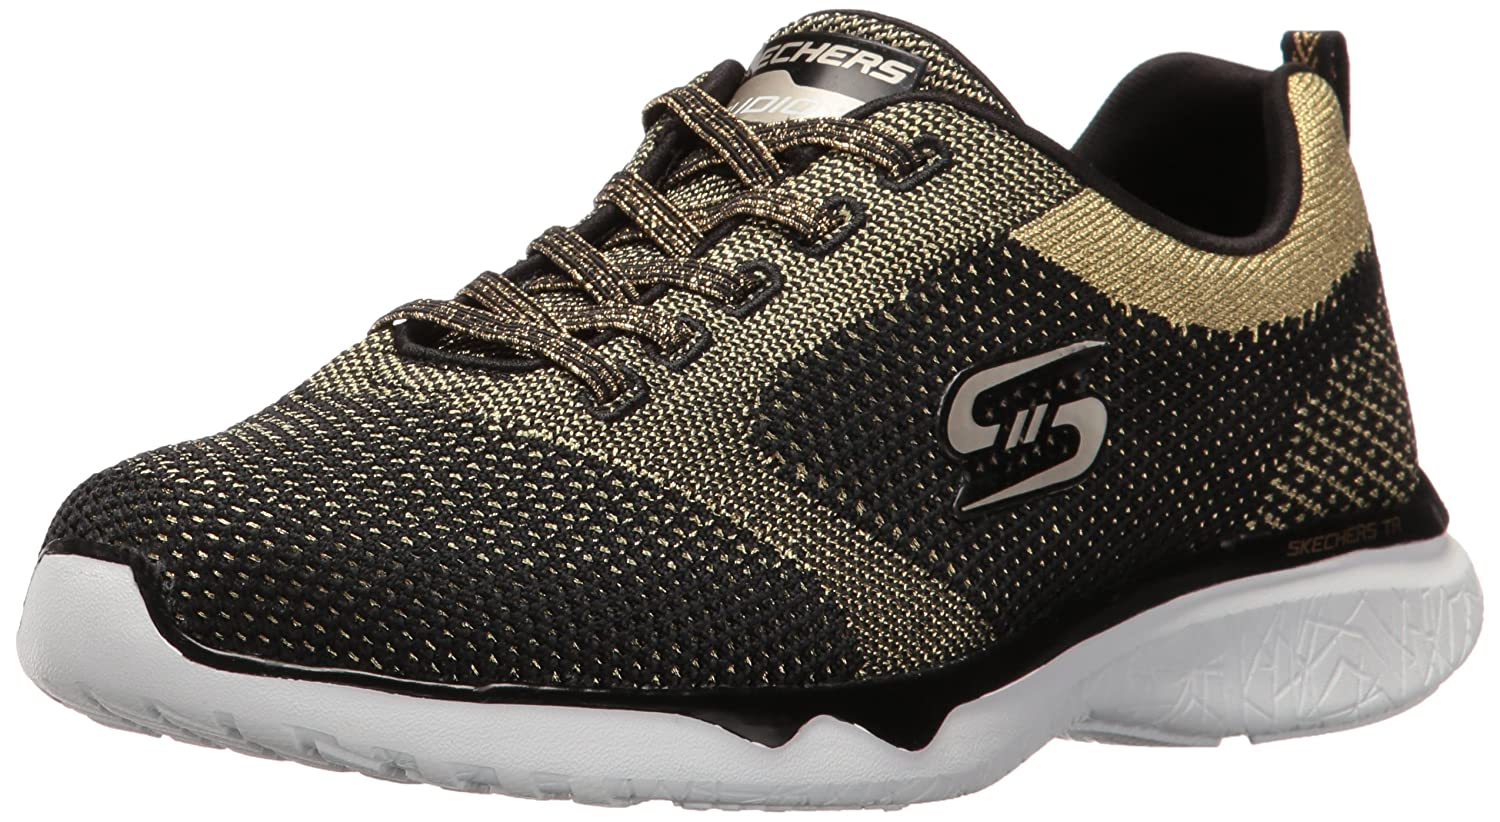 Skechers Sport Women's Studio Burst Virtual Reality Fashion Sneaker B01HRWFJKY 8 B(M) US|Black Gold